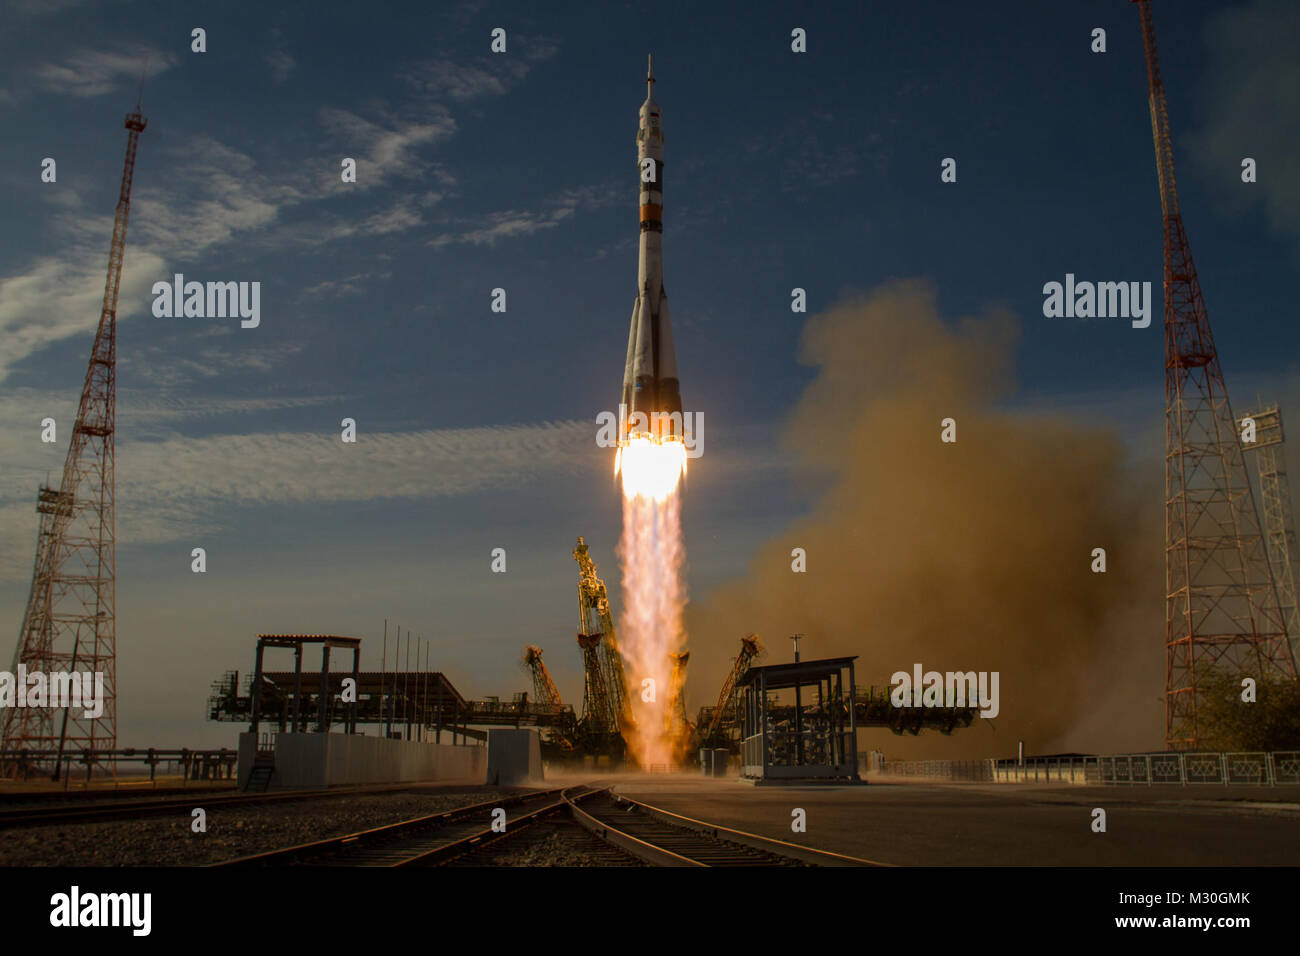 The Soyuz rocket with Expedition 33/34 crew members, Soyuz Commander Oleg Novitskiy, Flight Engineer Kevin Ford - Stock Image